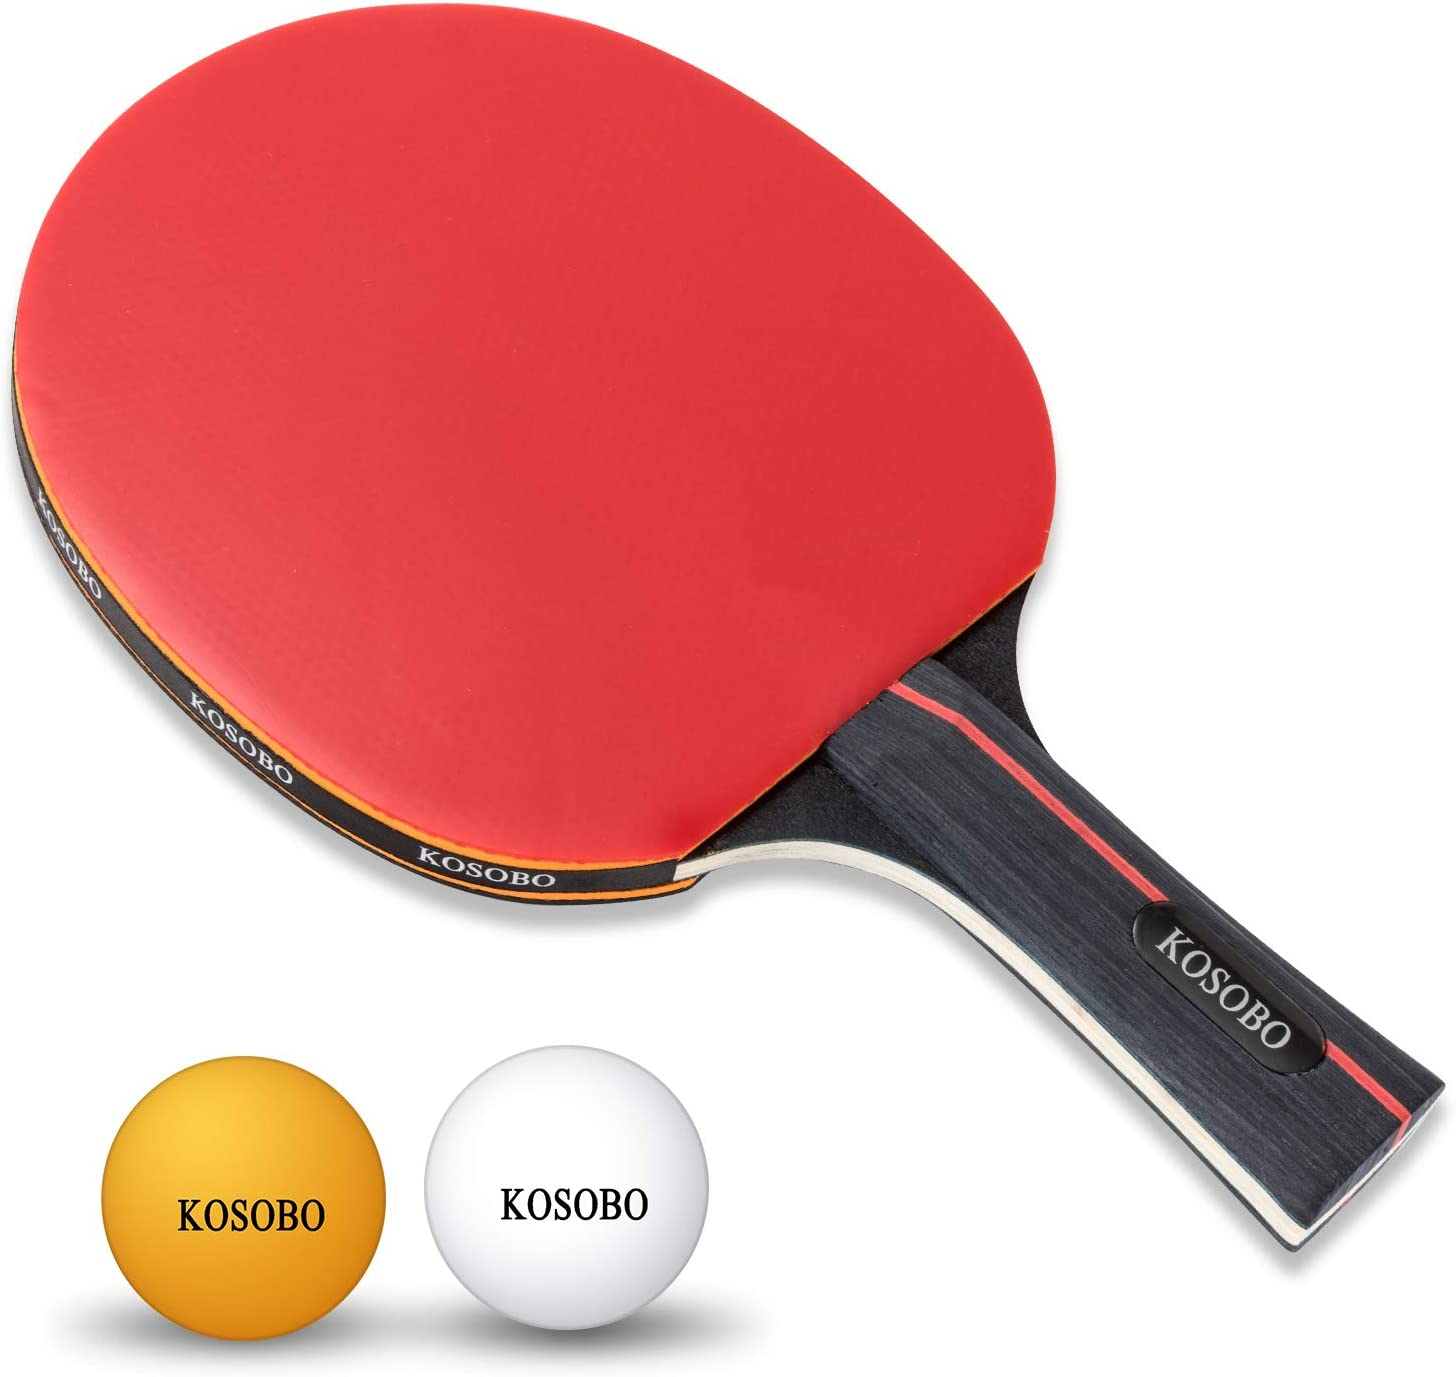 KOSOBO Ping Pong Paddles, with a Retractable Net, 6 Table Tennis Balls, Premium Table Tennis Set for Home, Office and Outdoor Playing : Sports & Outdoors